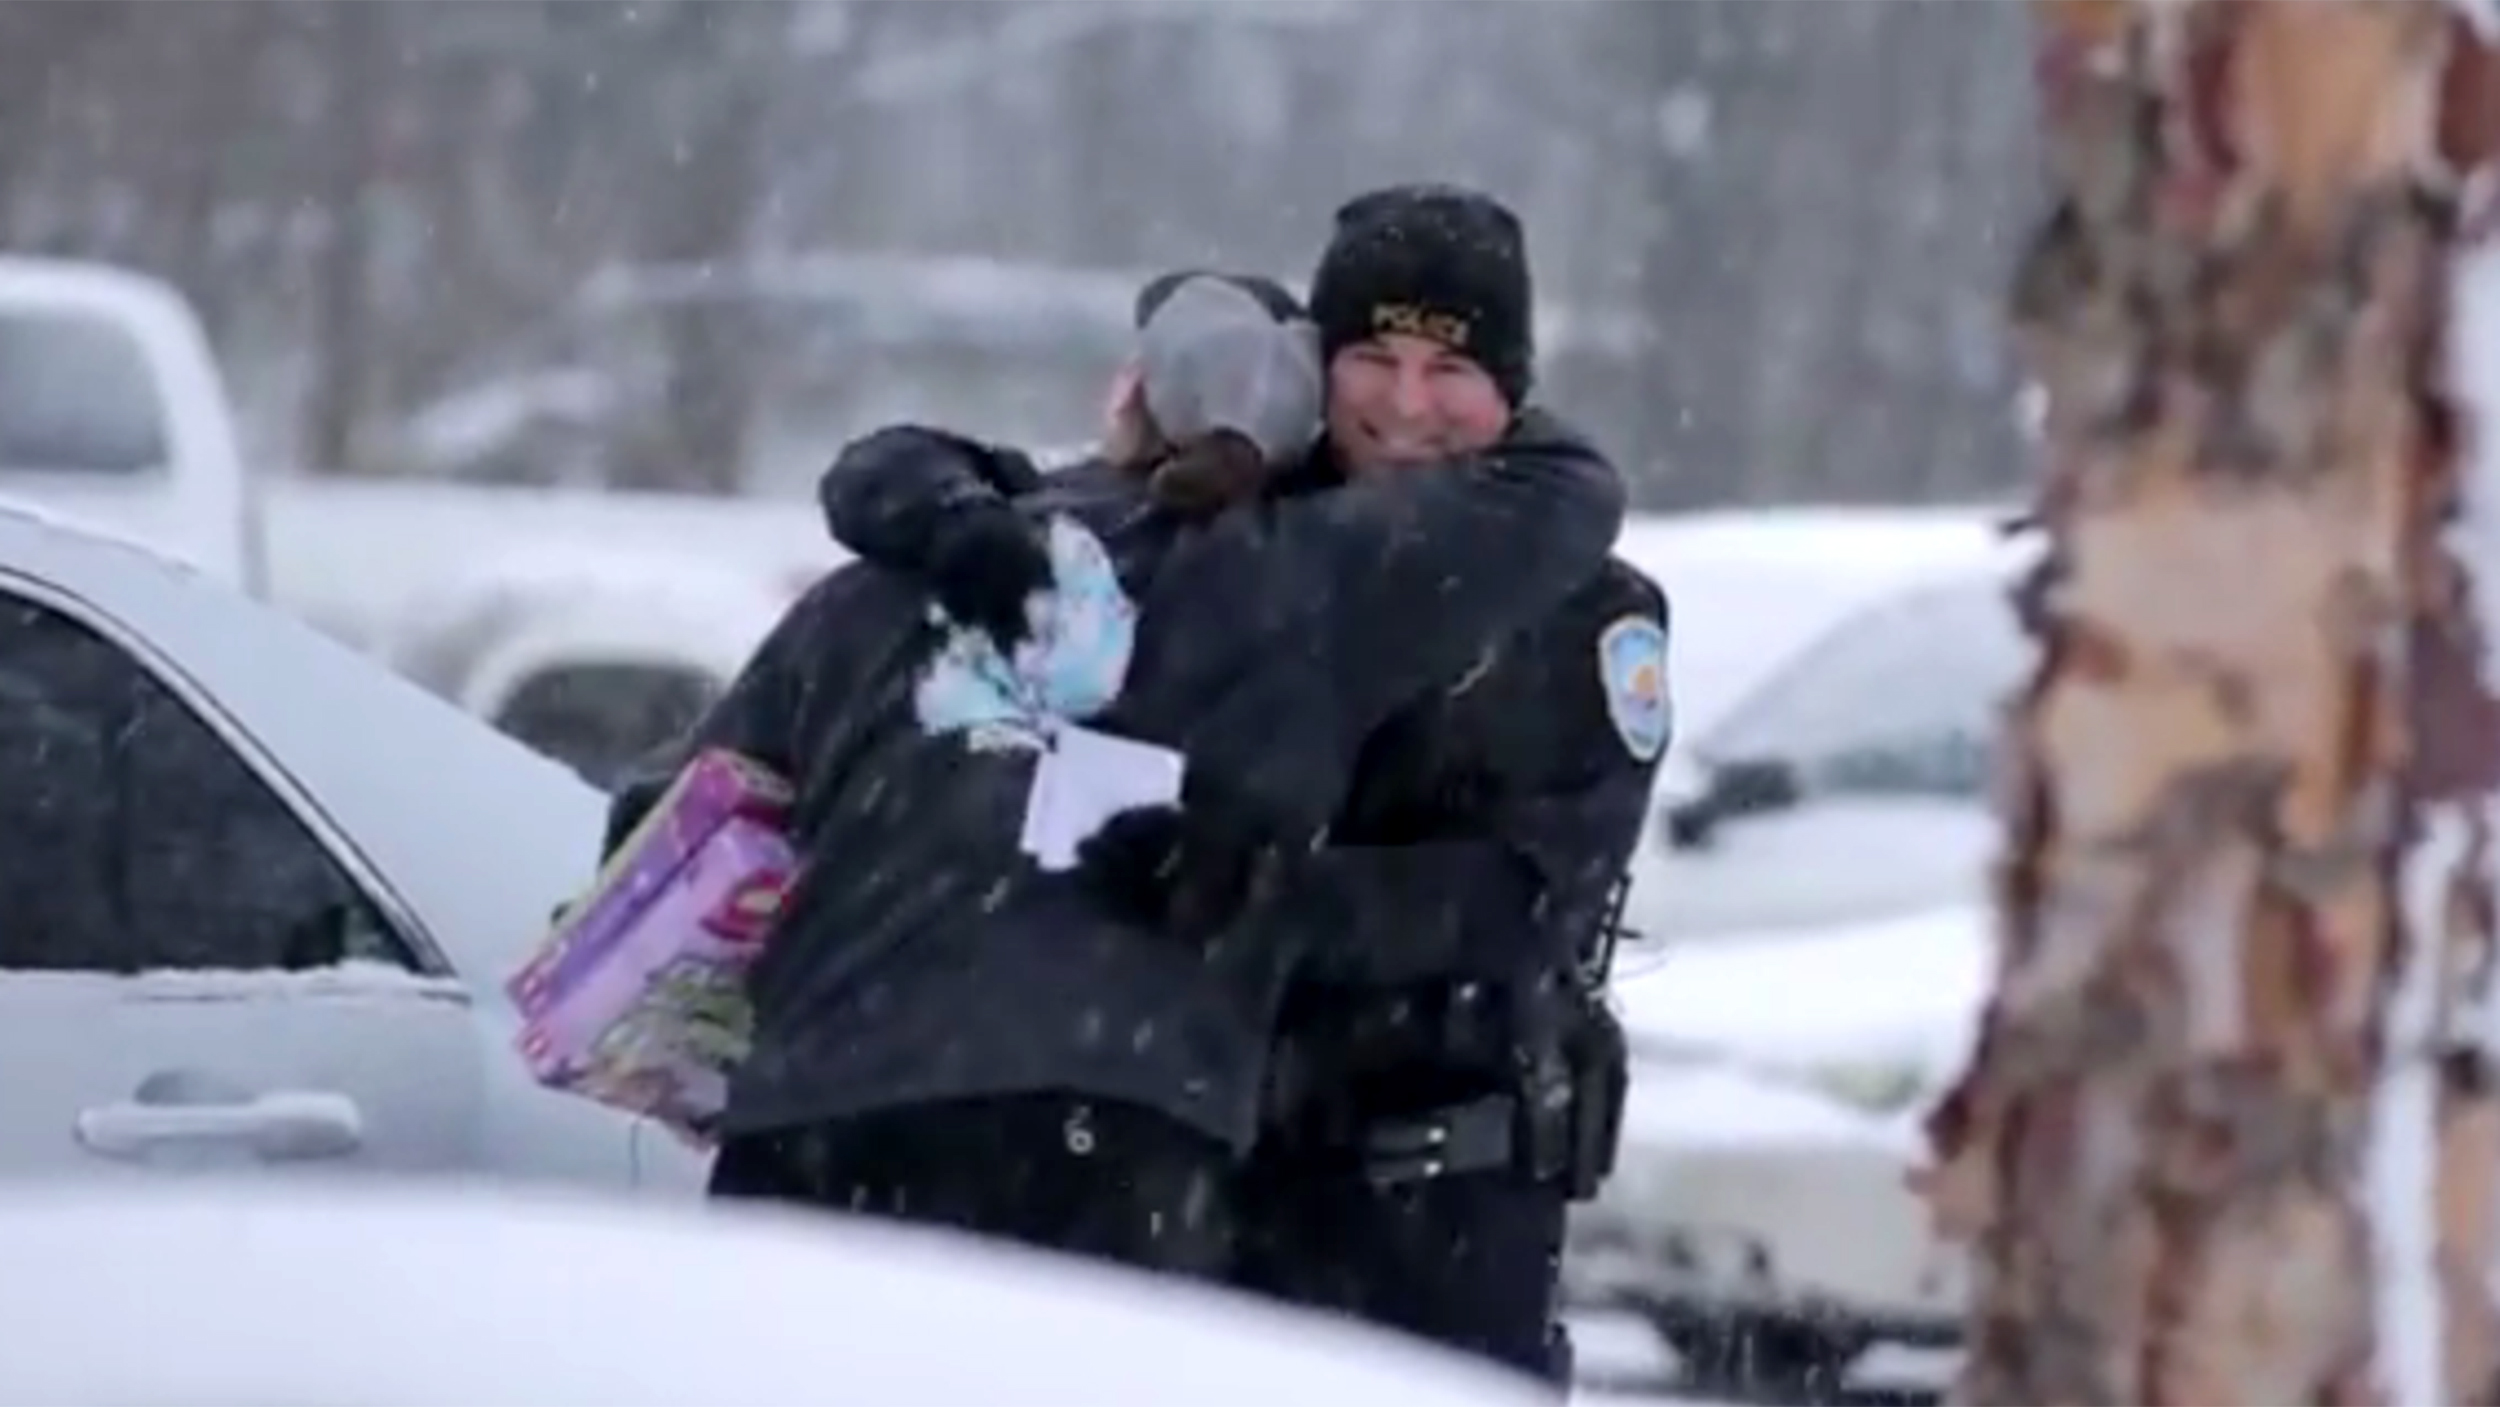 Viral video shows cops pulling over drivers to give them holiday gifts & Surprise! Video shows cops stopping drivers to give them holiday gifts